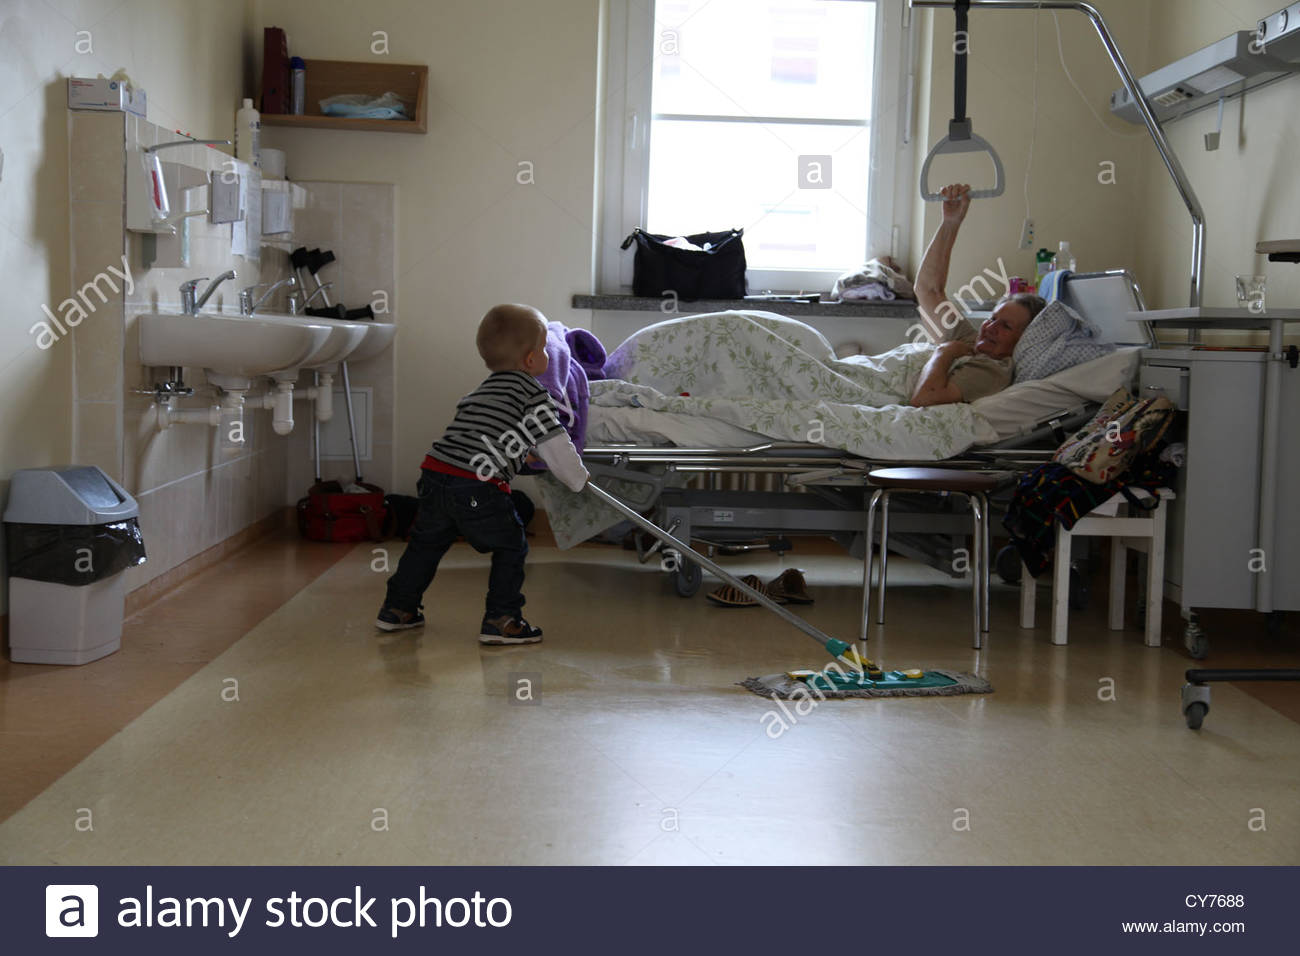 child, great grandmother, kid, nanny, granny, care, hospital, cleaning, clean, - Stock Image